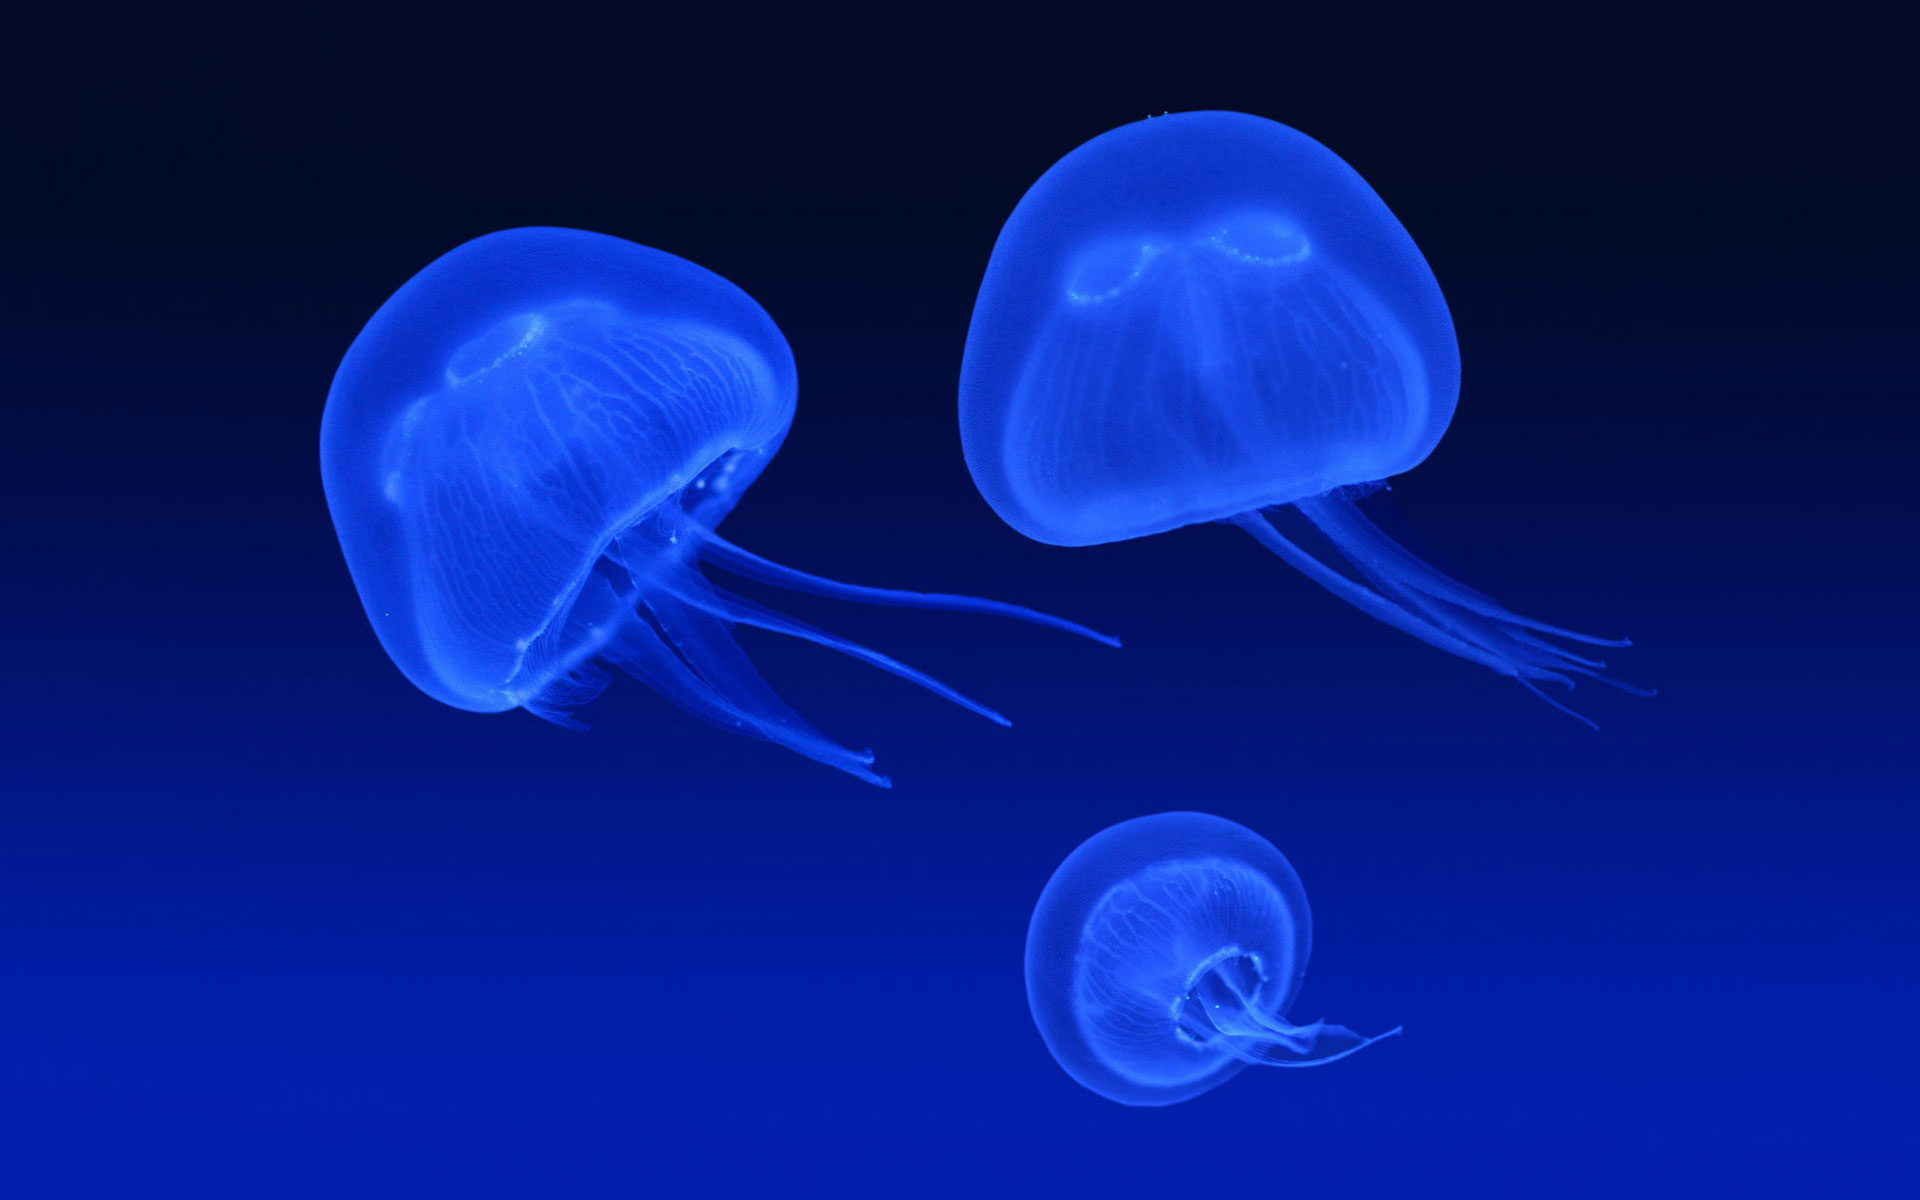 Floating Jellyfish 573.32 Kb